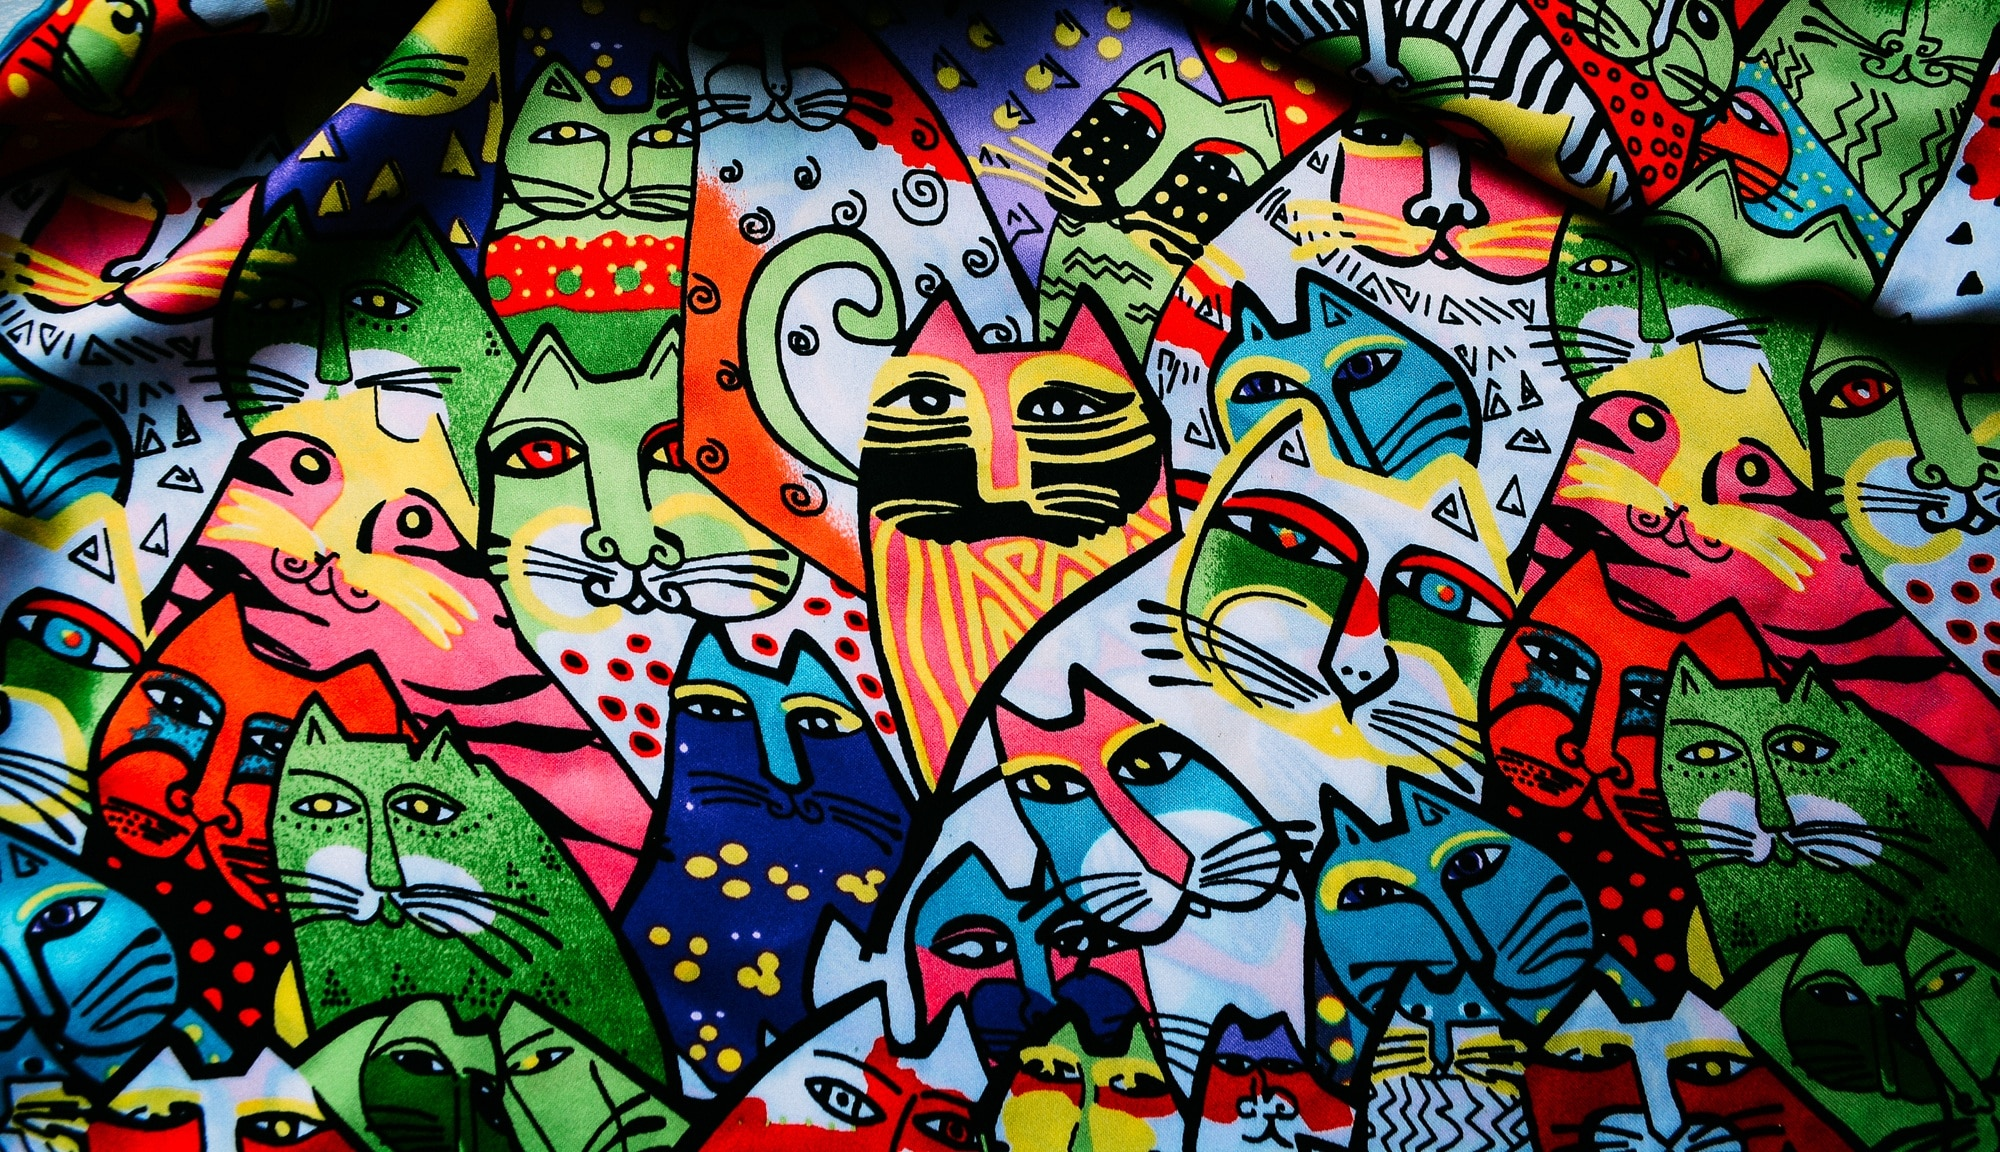 European Graffiti Capitals: The Best Places to See Street Art in Europe